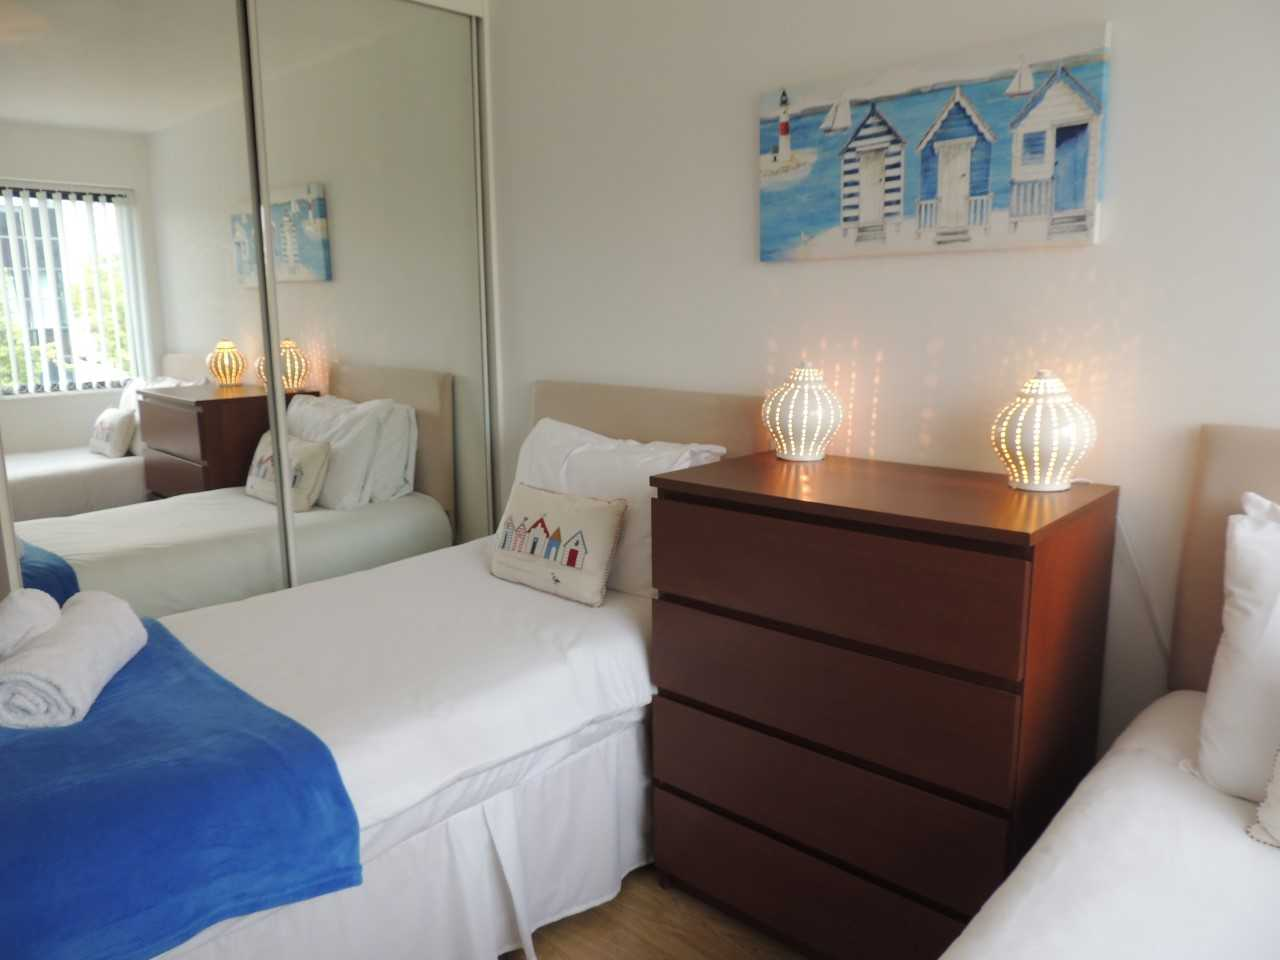 Twin beds at South Row Apartments